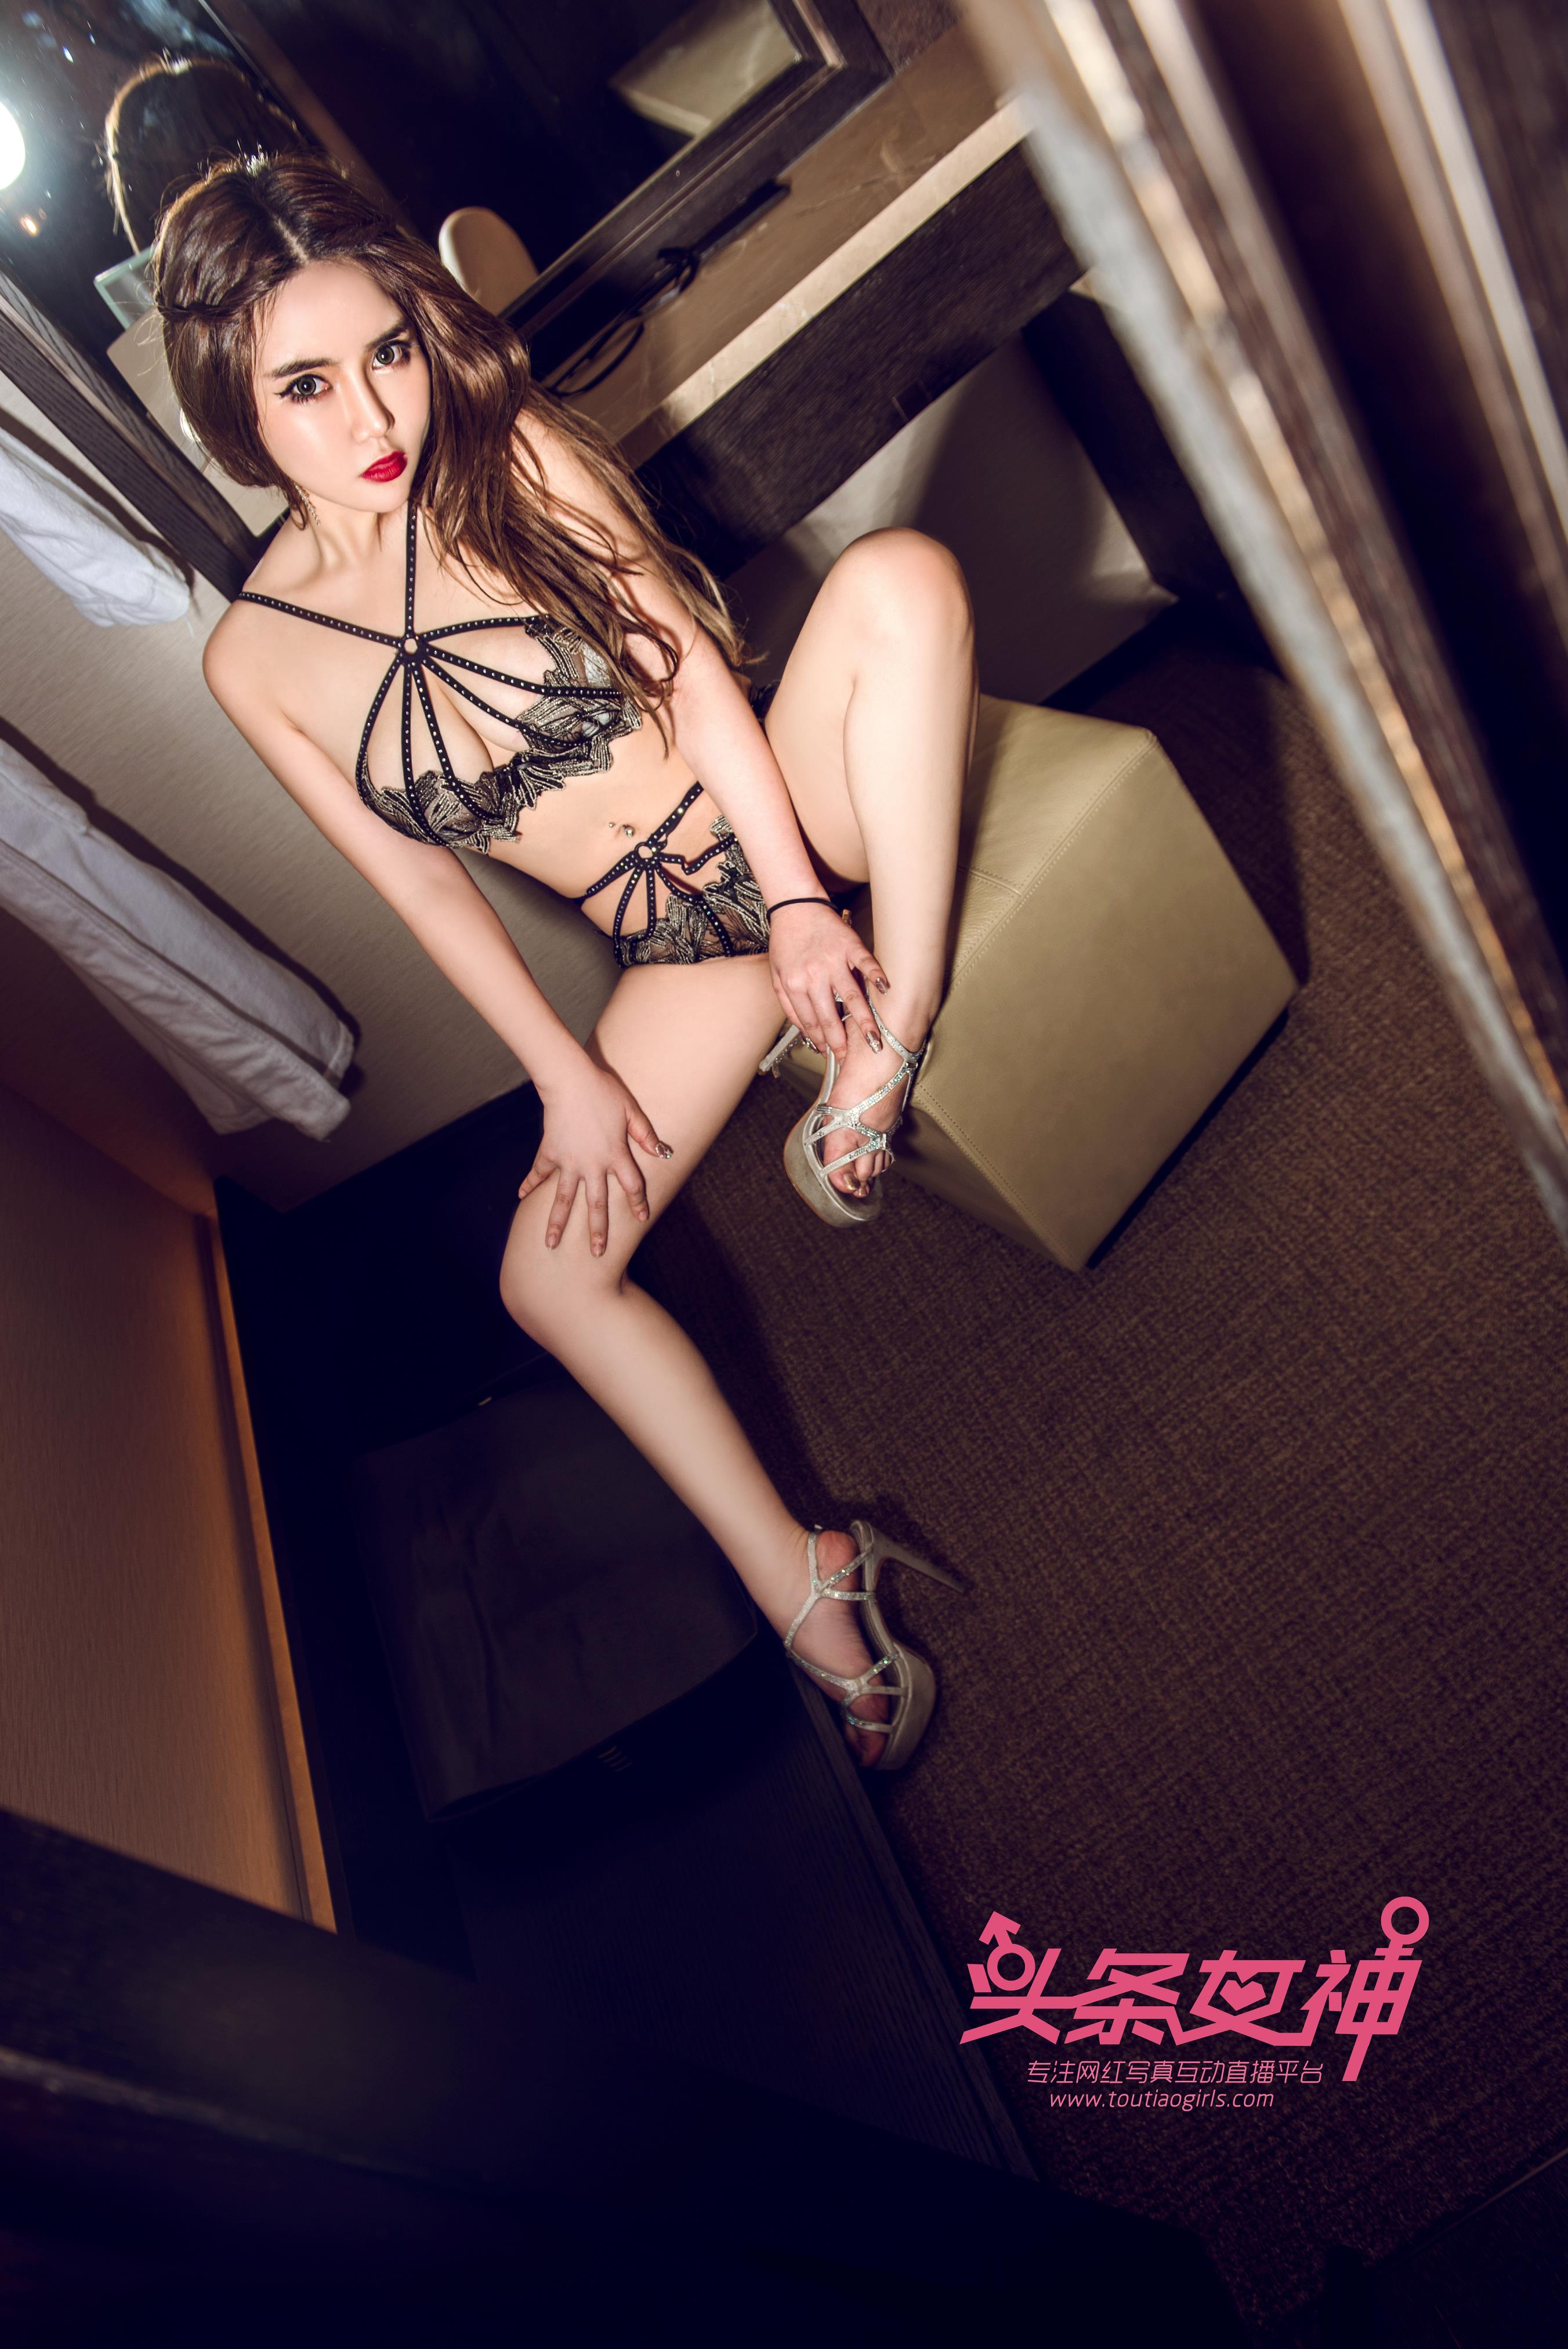 hot pose Chinese lingerie girl